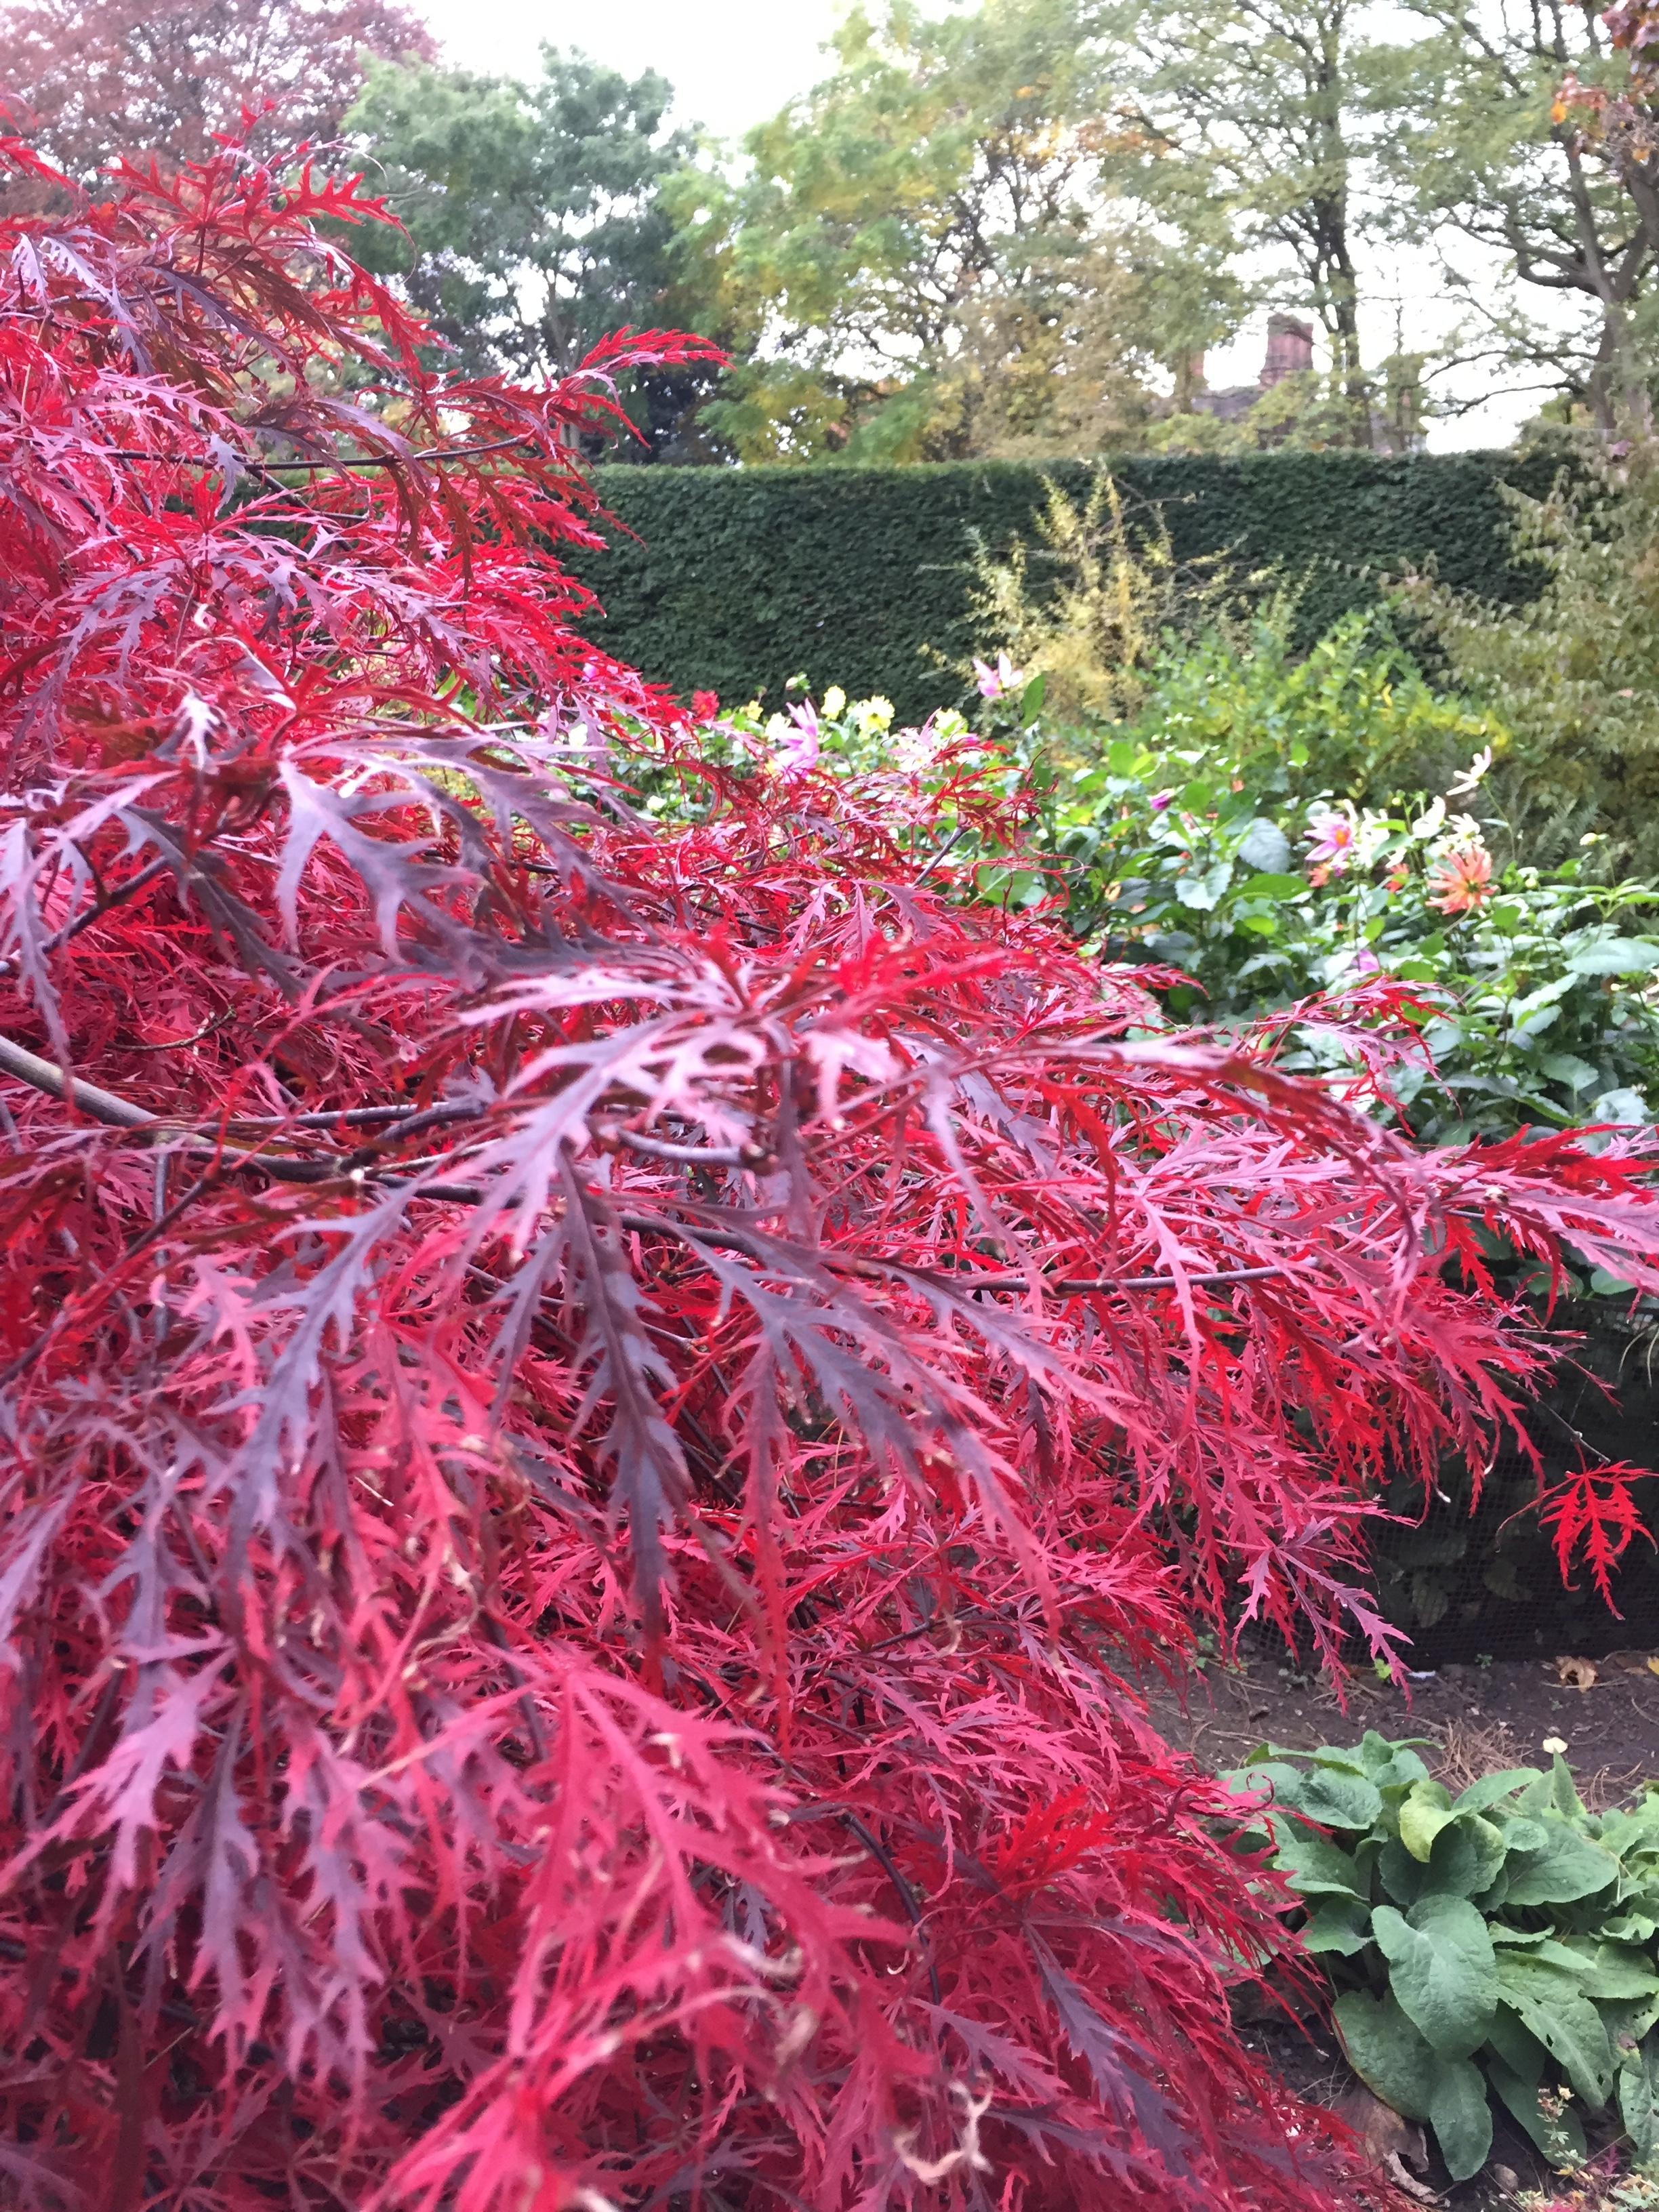 Autumn leaves at Goddards House and Garden